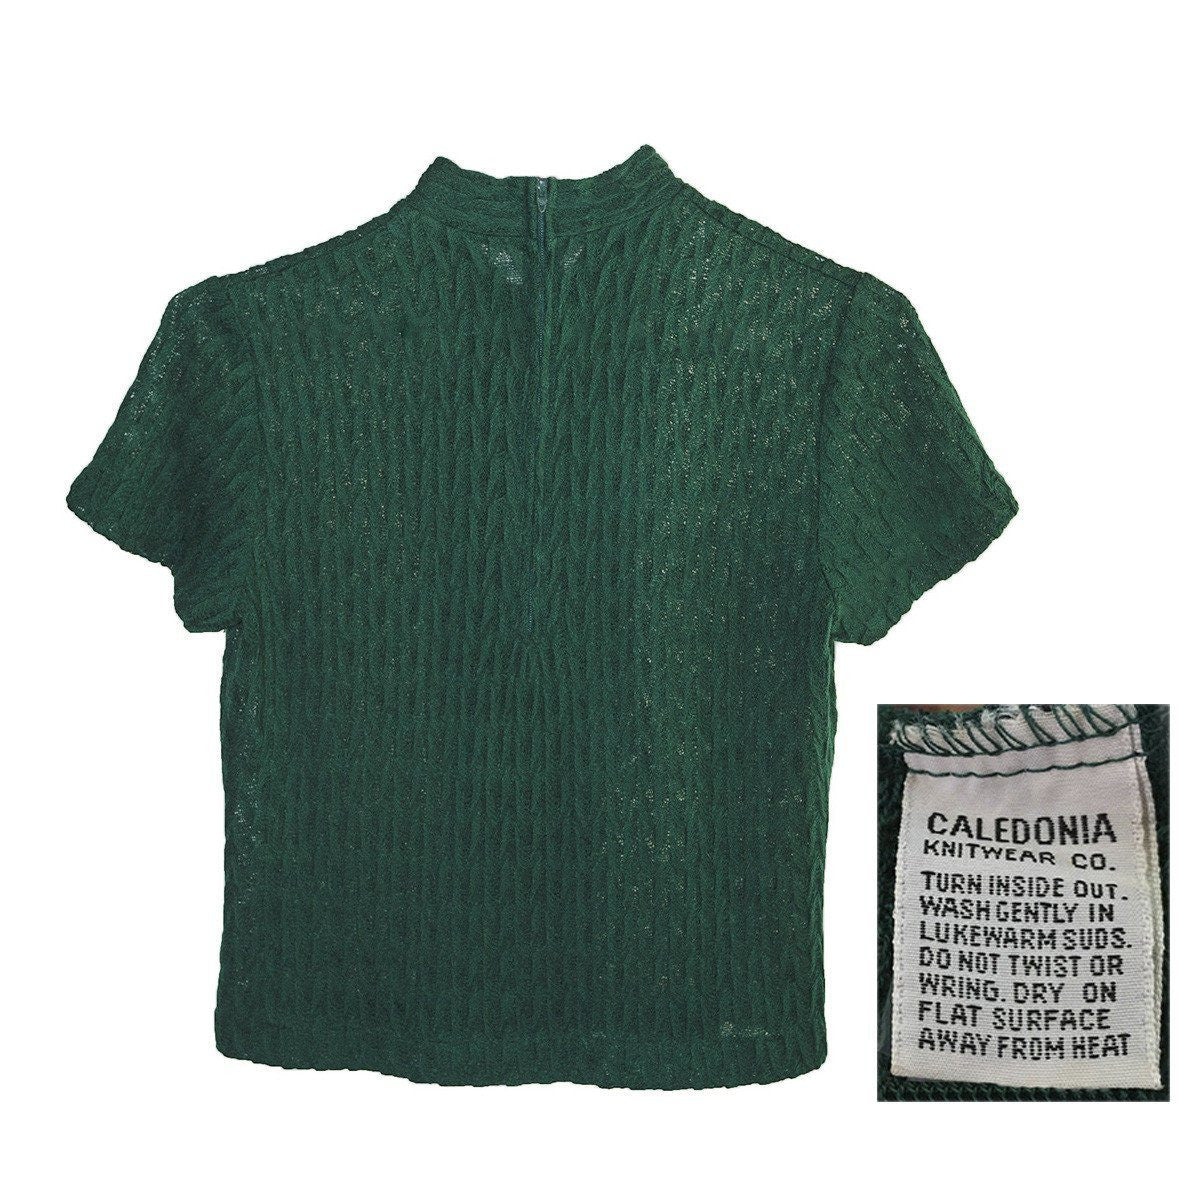 1950s Emerald Green Short Sleeve Sweater 4, Self Tie, Size Small